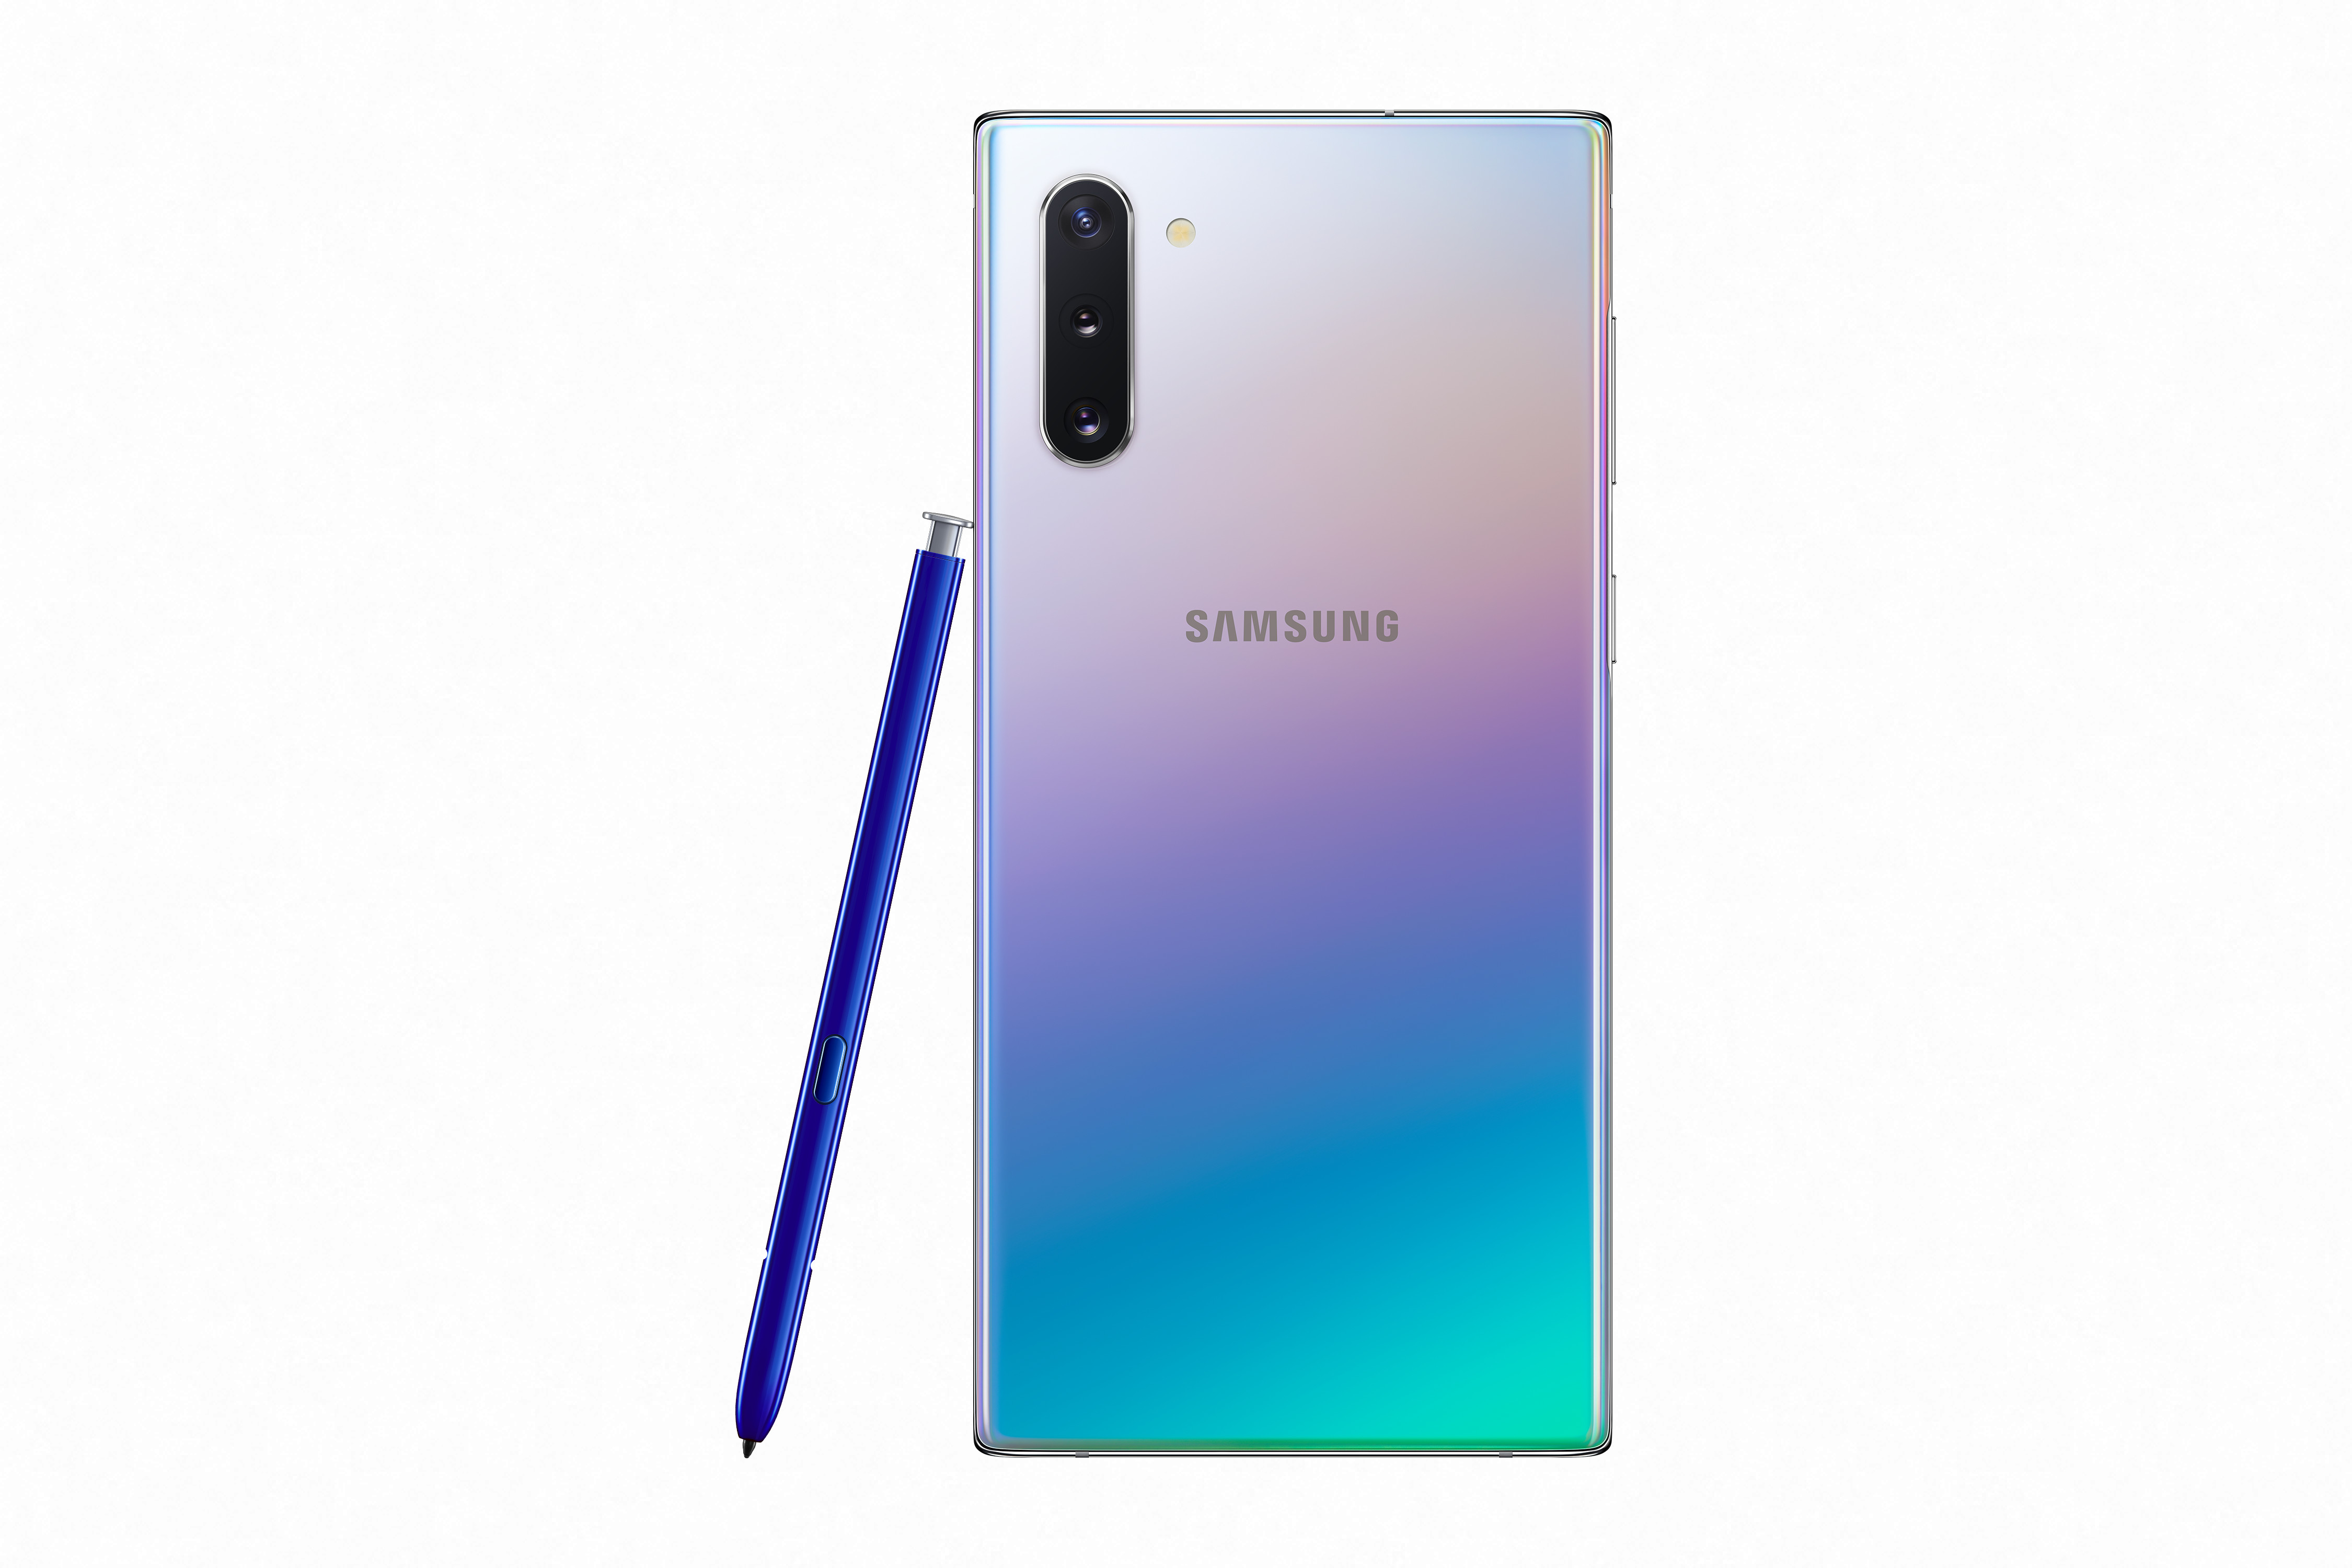 sfr_article-samsung-note-10_ArgentDos_080919.jpg